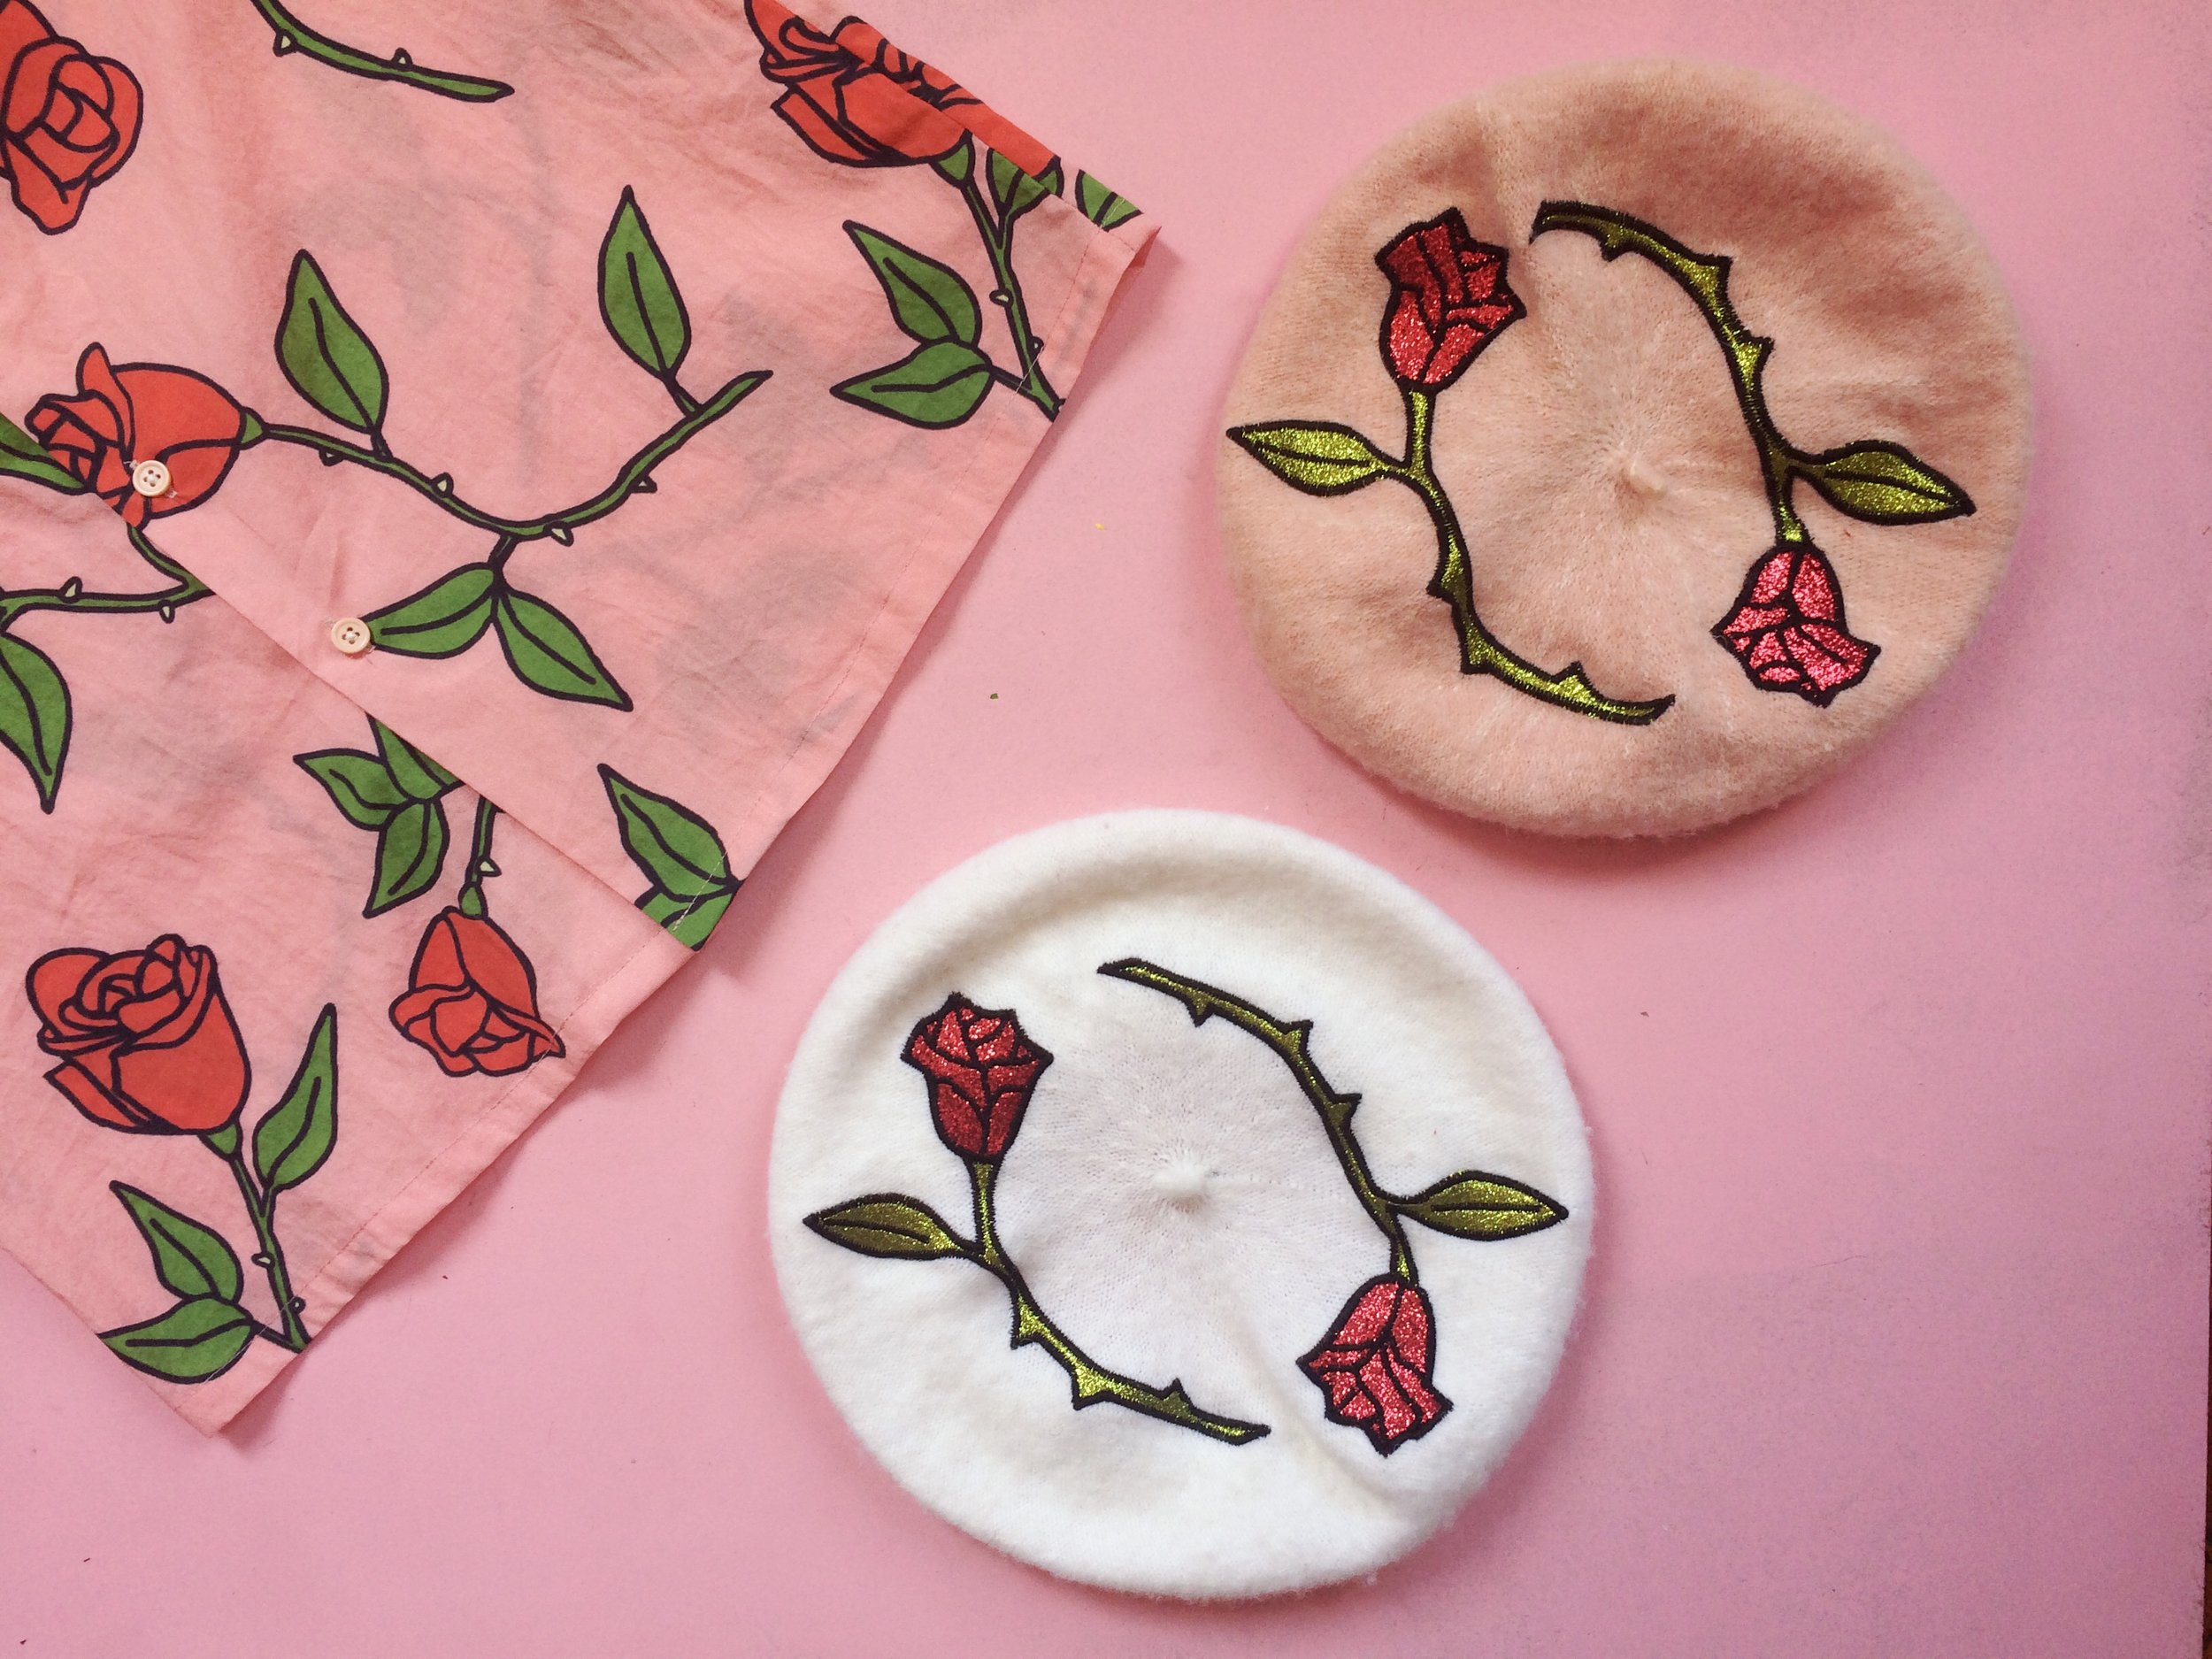 2017 Roses Textile Graphic and Embroidery